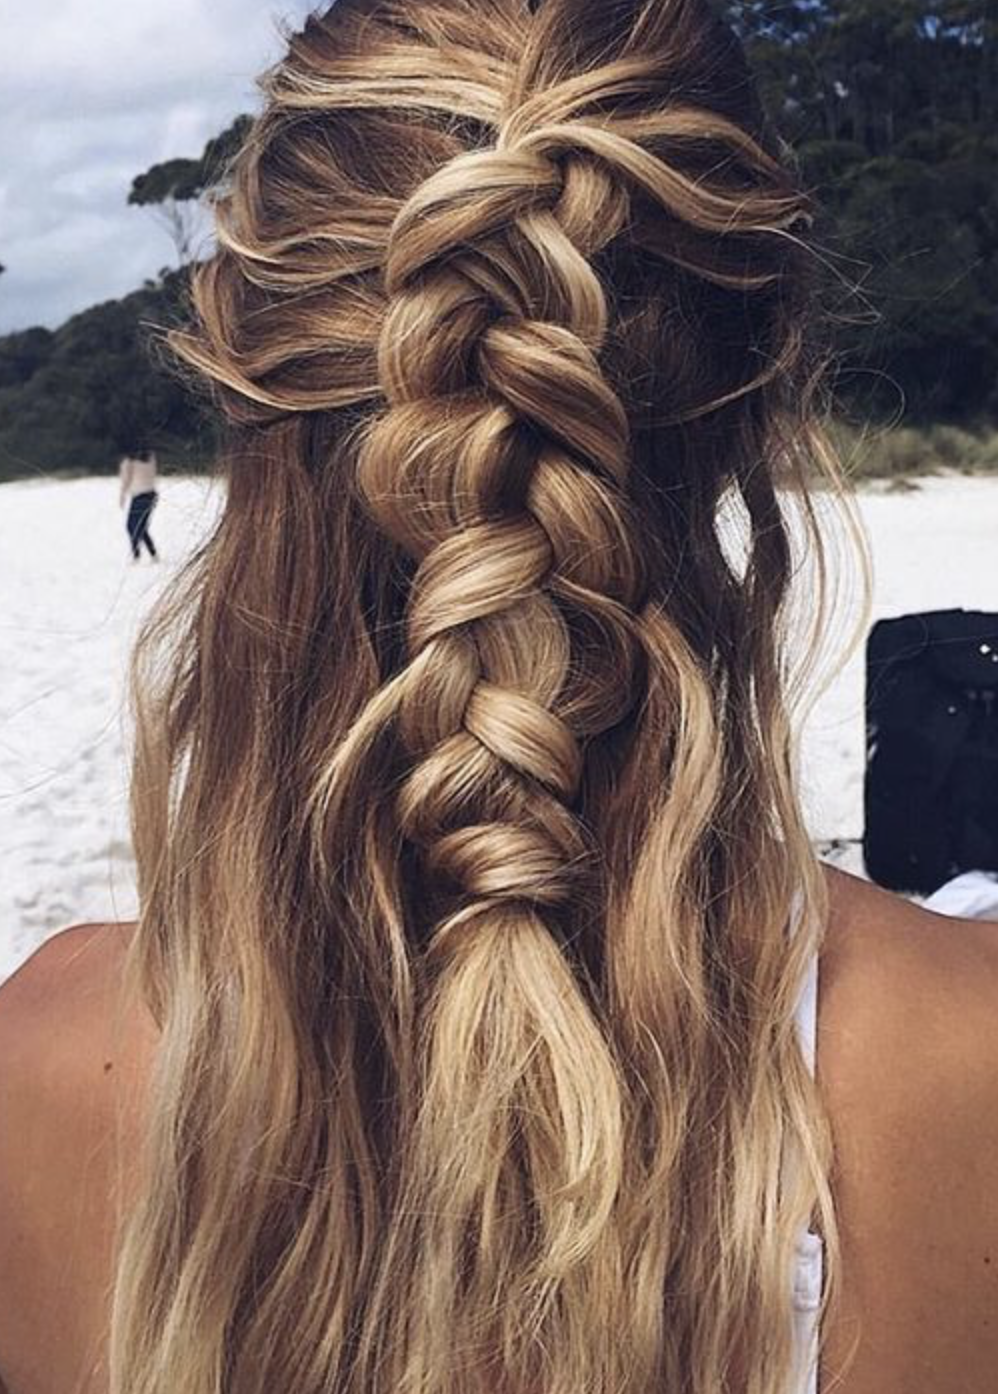 Pin by abby webster on hair pinterest snapchat instagram and